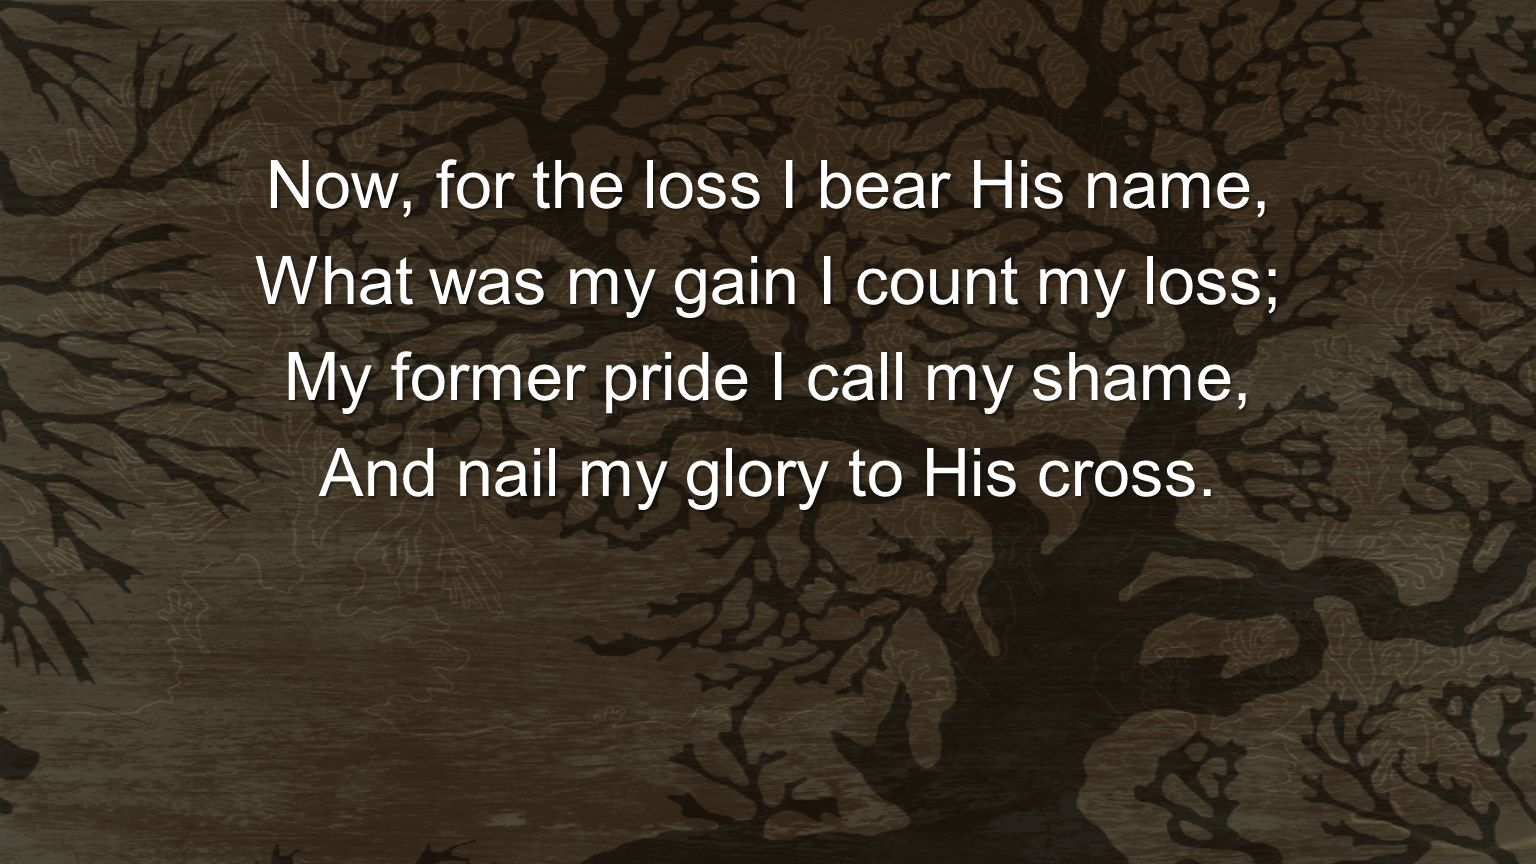 Now, for the loss I bear His name, What was my gain I count my loss;